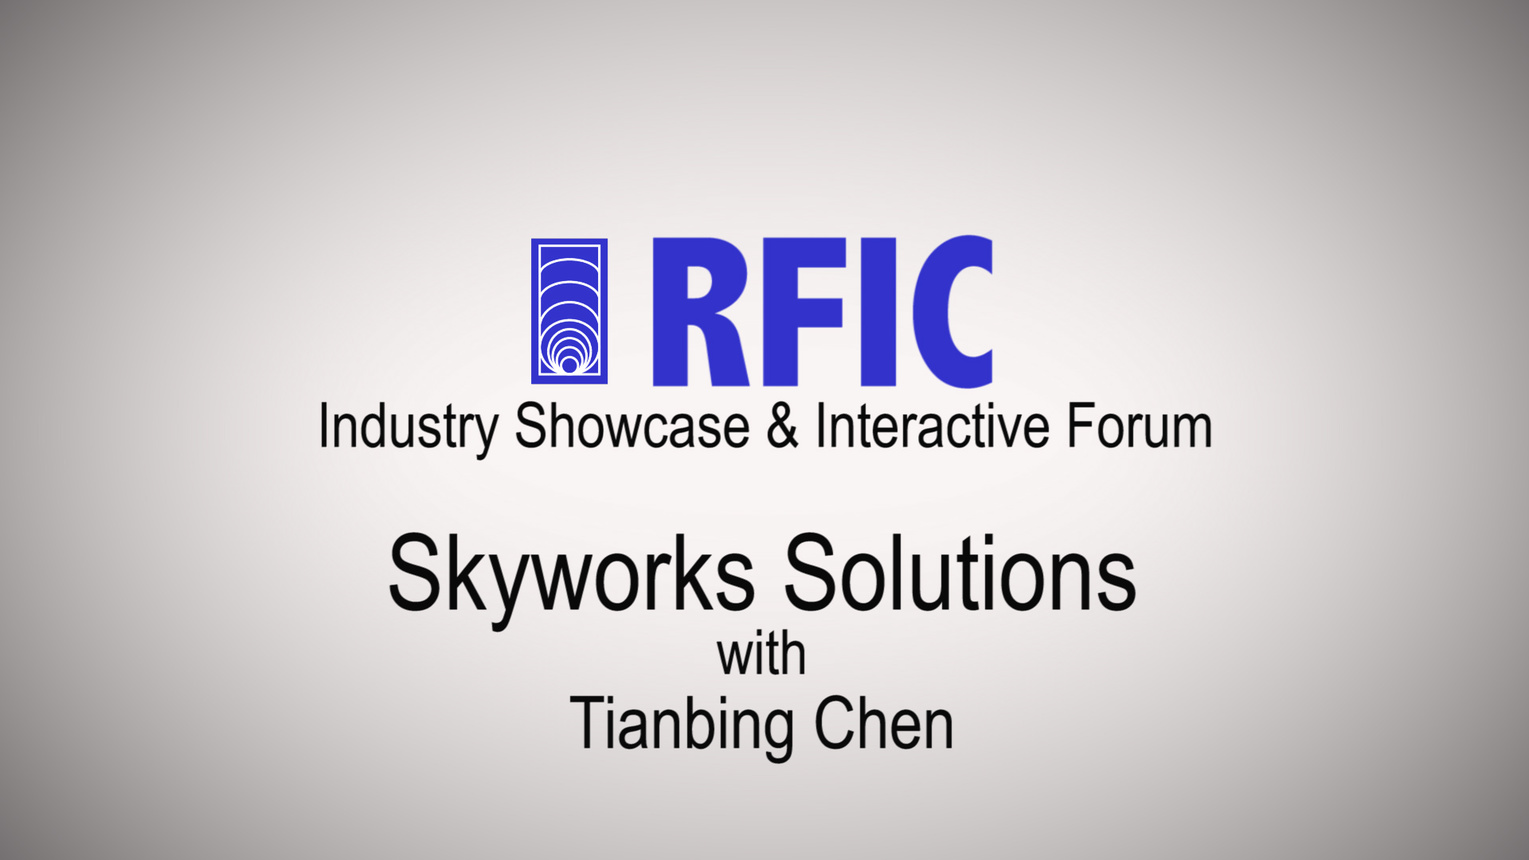 On the Characterization of Thermal Coupling Resistance in a Current Mirror: RFIC Industry Showcase 2016